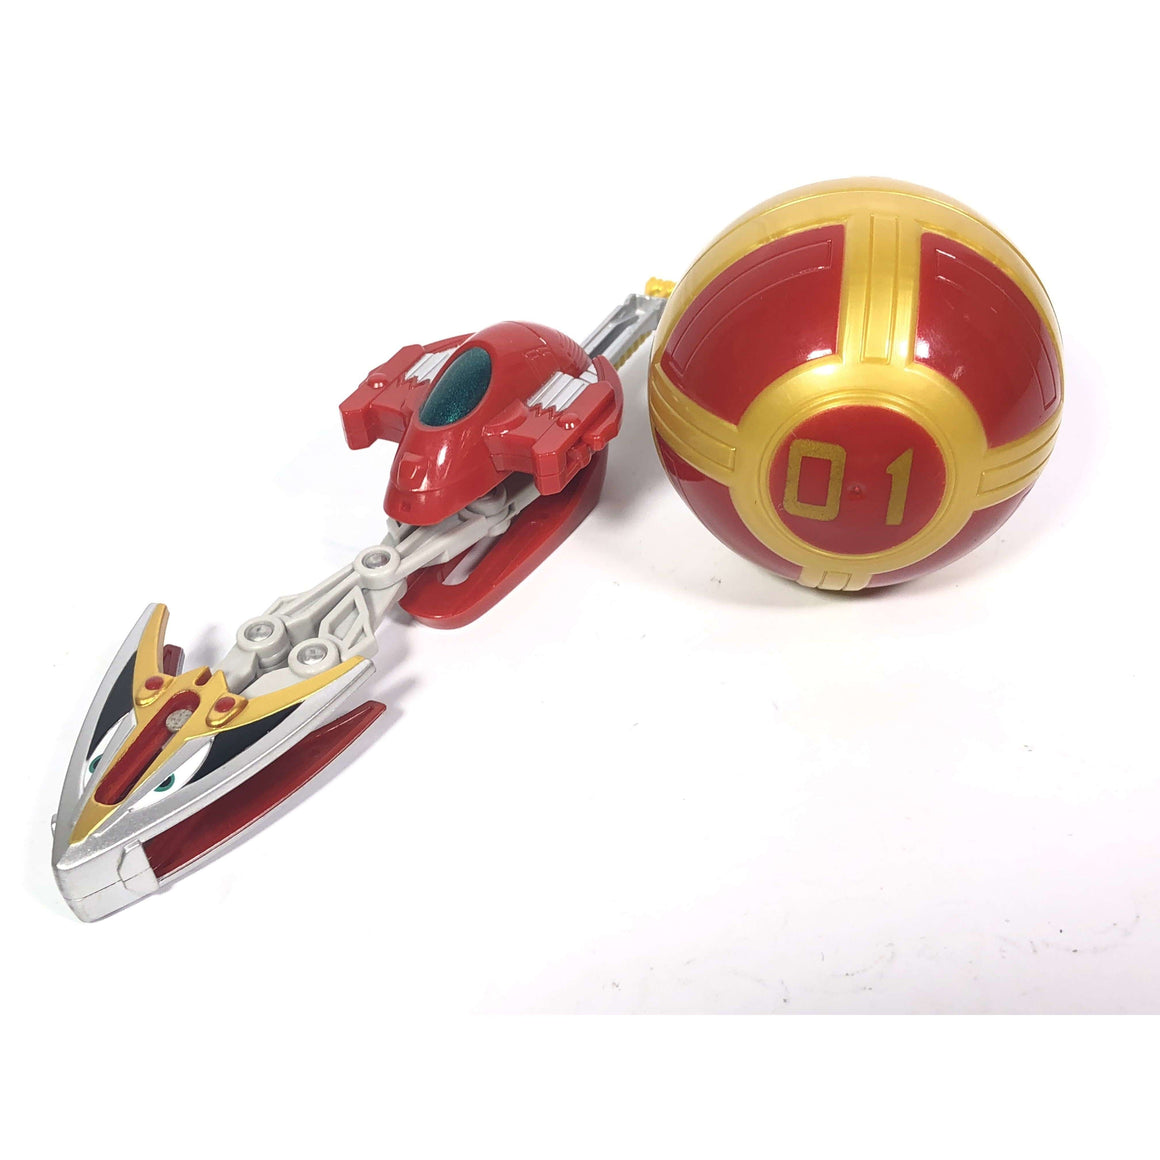 CSTOYS INTERNATIONAL:[LOOSE] Ninpuu Sentai Hurricaneger: Karakuri Ball 01 - Sword Slasher